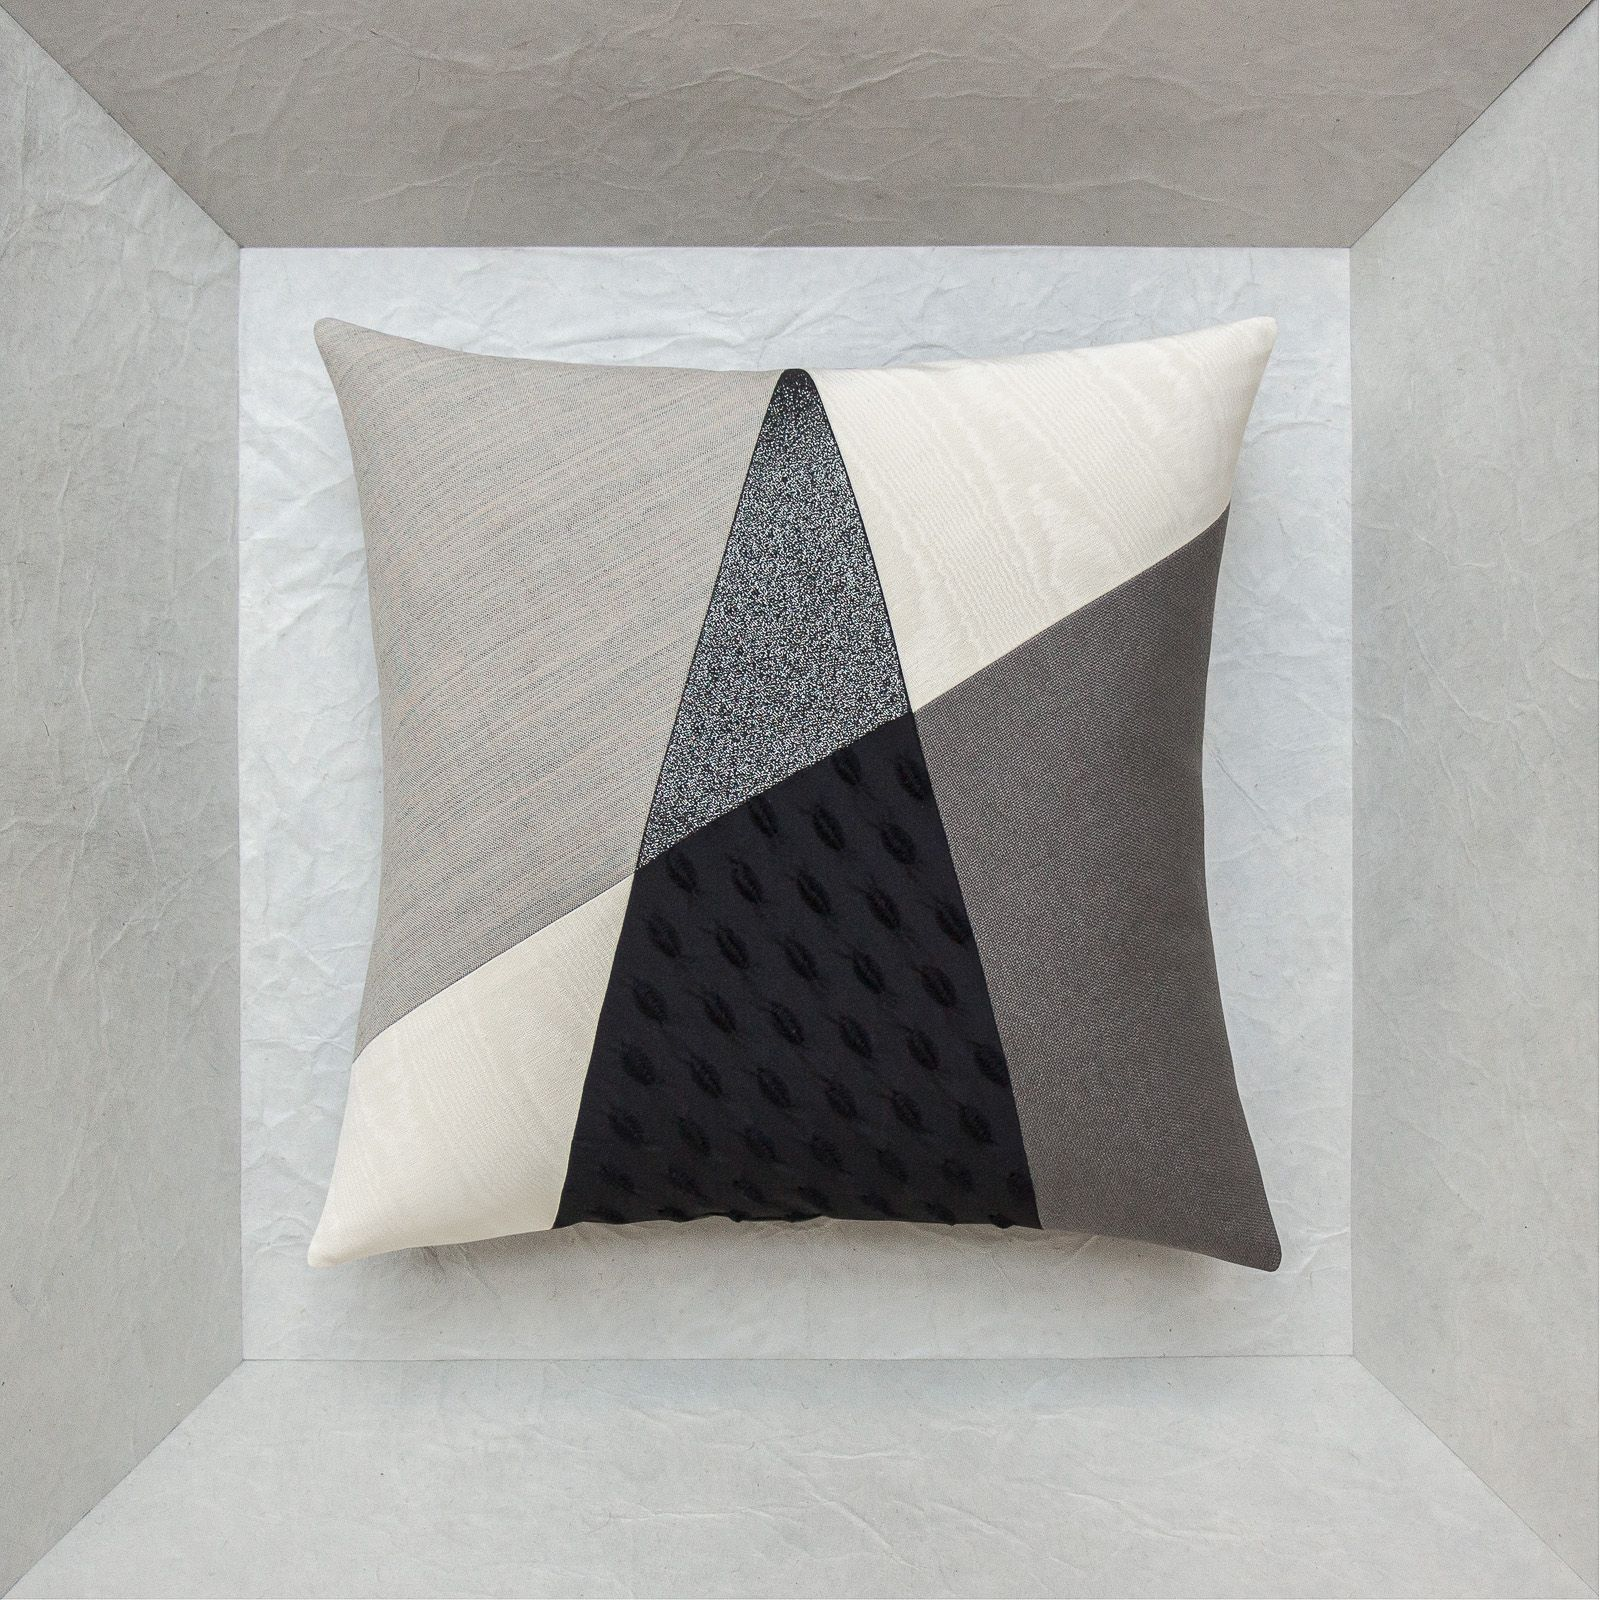 contemporary black and white cushions with a sharp design • Maison Popineau